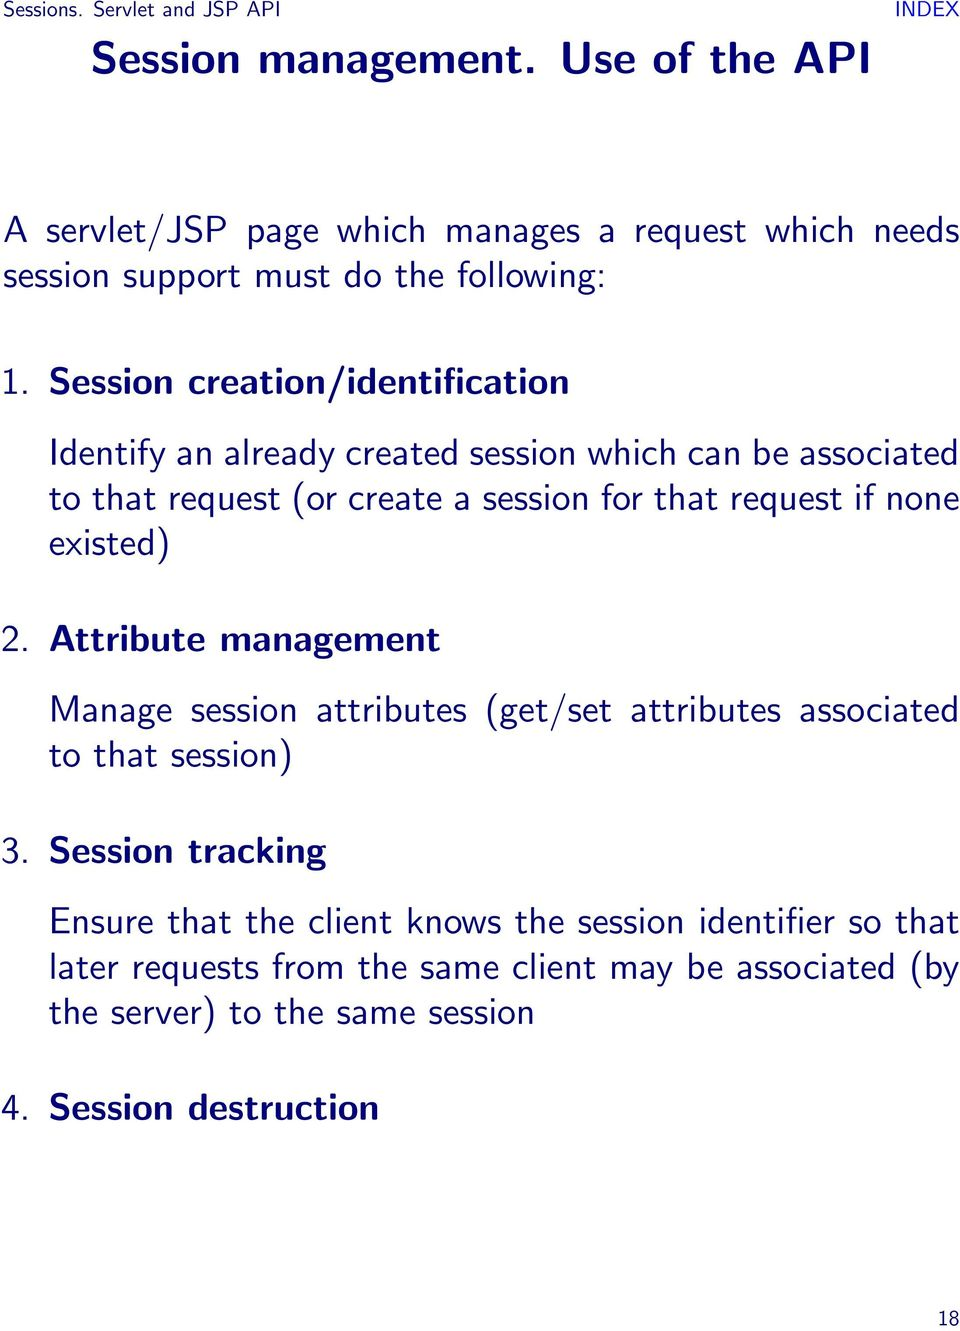 Session creation/identification Identify an already created session which can be associated to that request (or create a session for that request if none